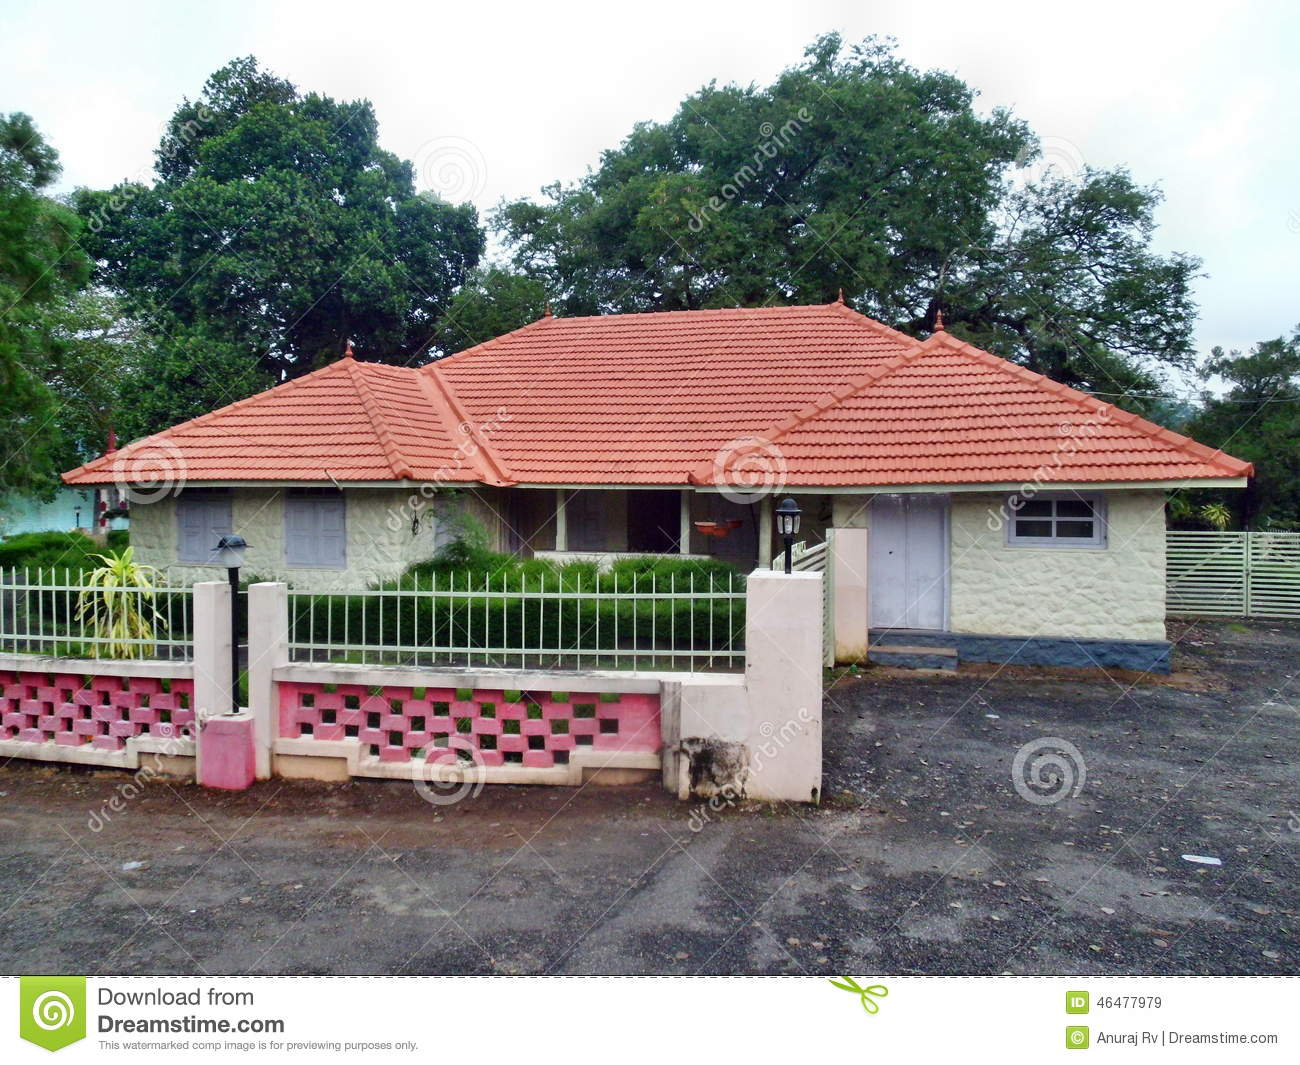 Kerala model house stock image image of building road for Indian small house designs photos